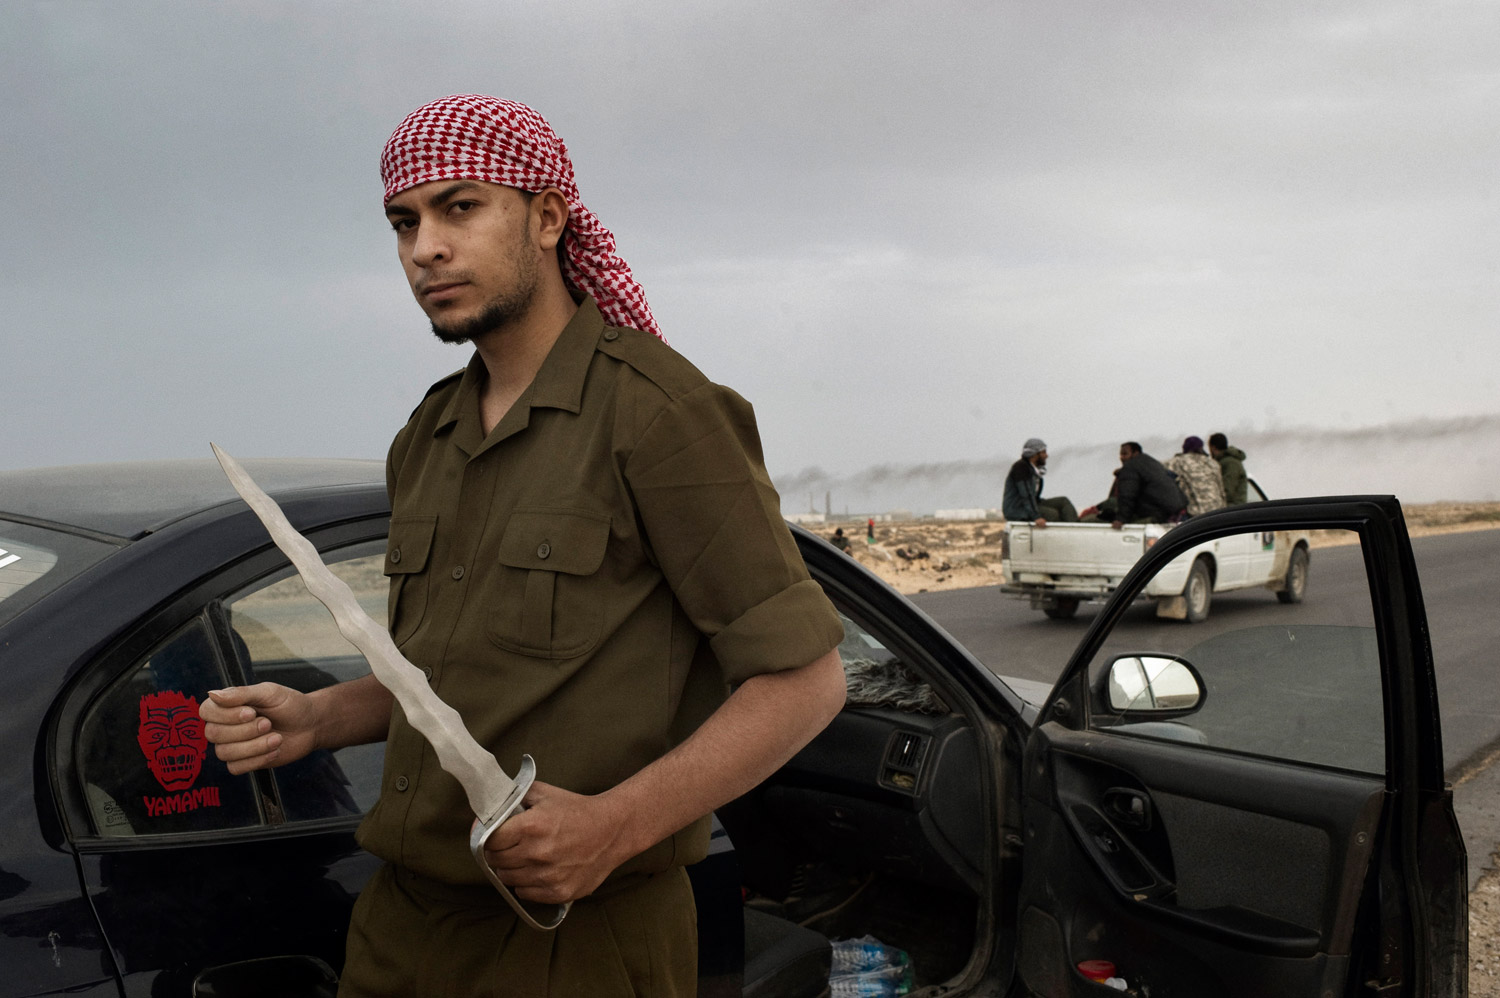 A Libyan rebel soldier, armed with a knife, on the outskirts of Bin Jawad, March 29, 2011.